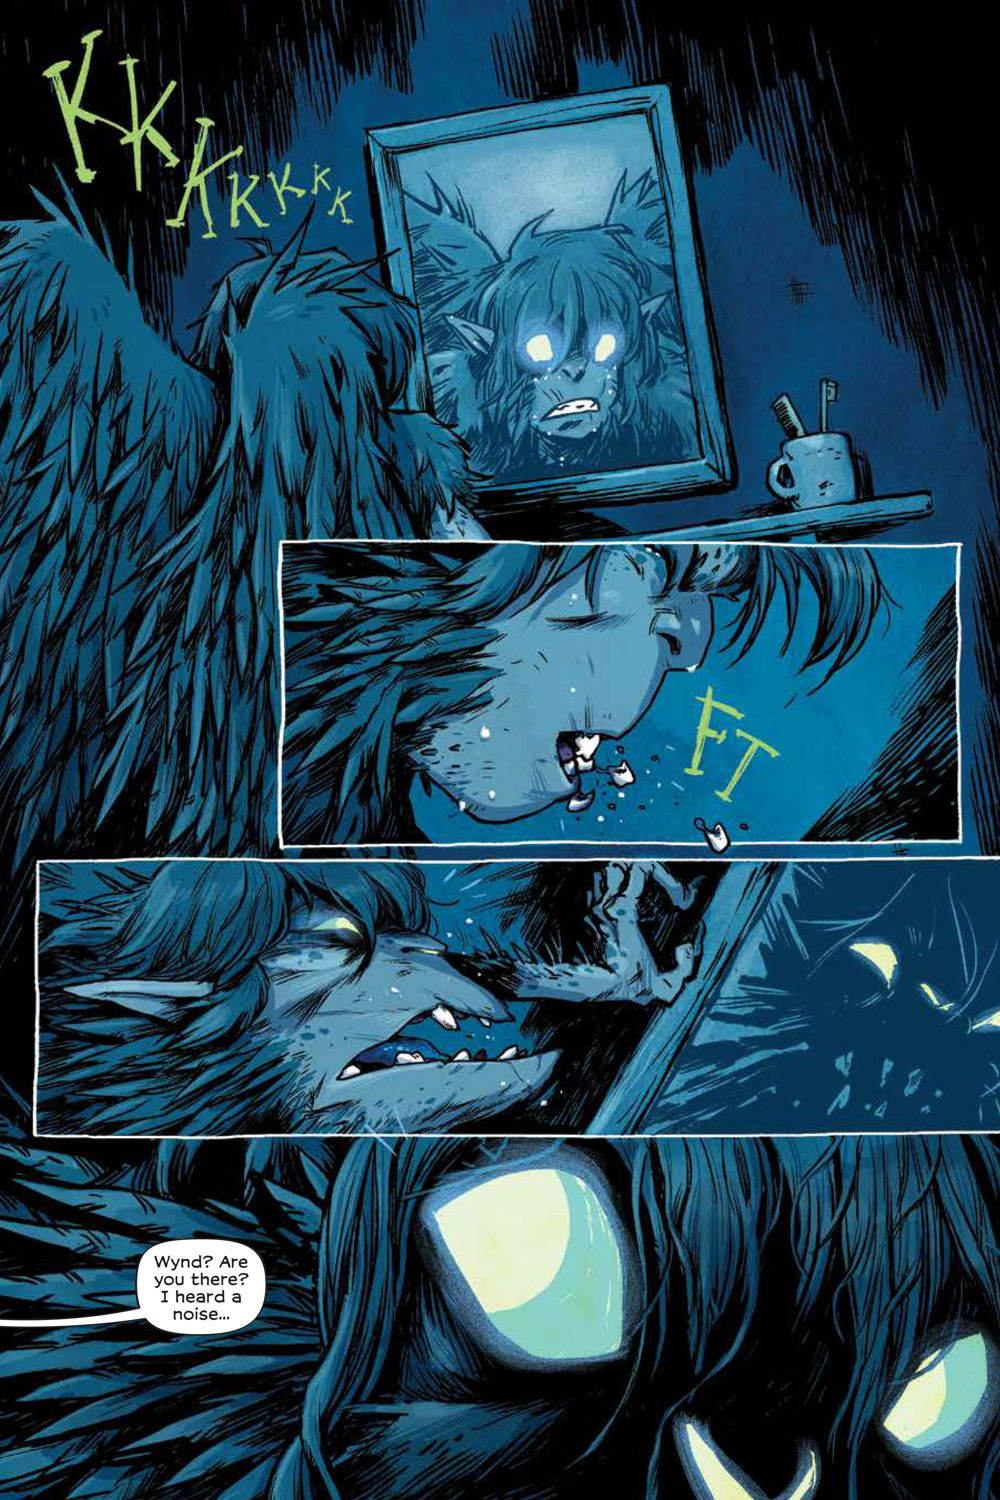 Wynd_v1_HC_PRESS_11 ComicList Previews: WYND VOLUME 1 THE FLIGHT OF THE PRINCE HC (COMIC BOOK SHOP EXCLUSIVE HARDCOVER EDITION)